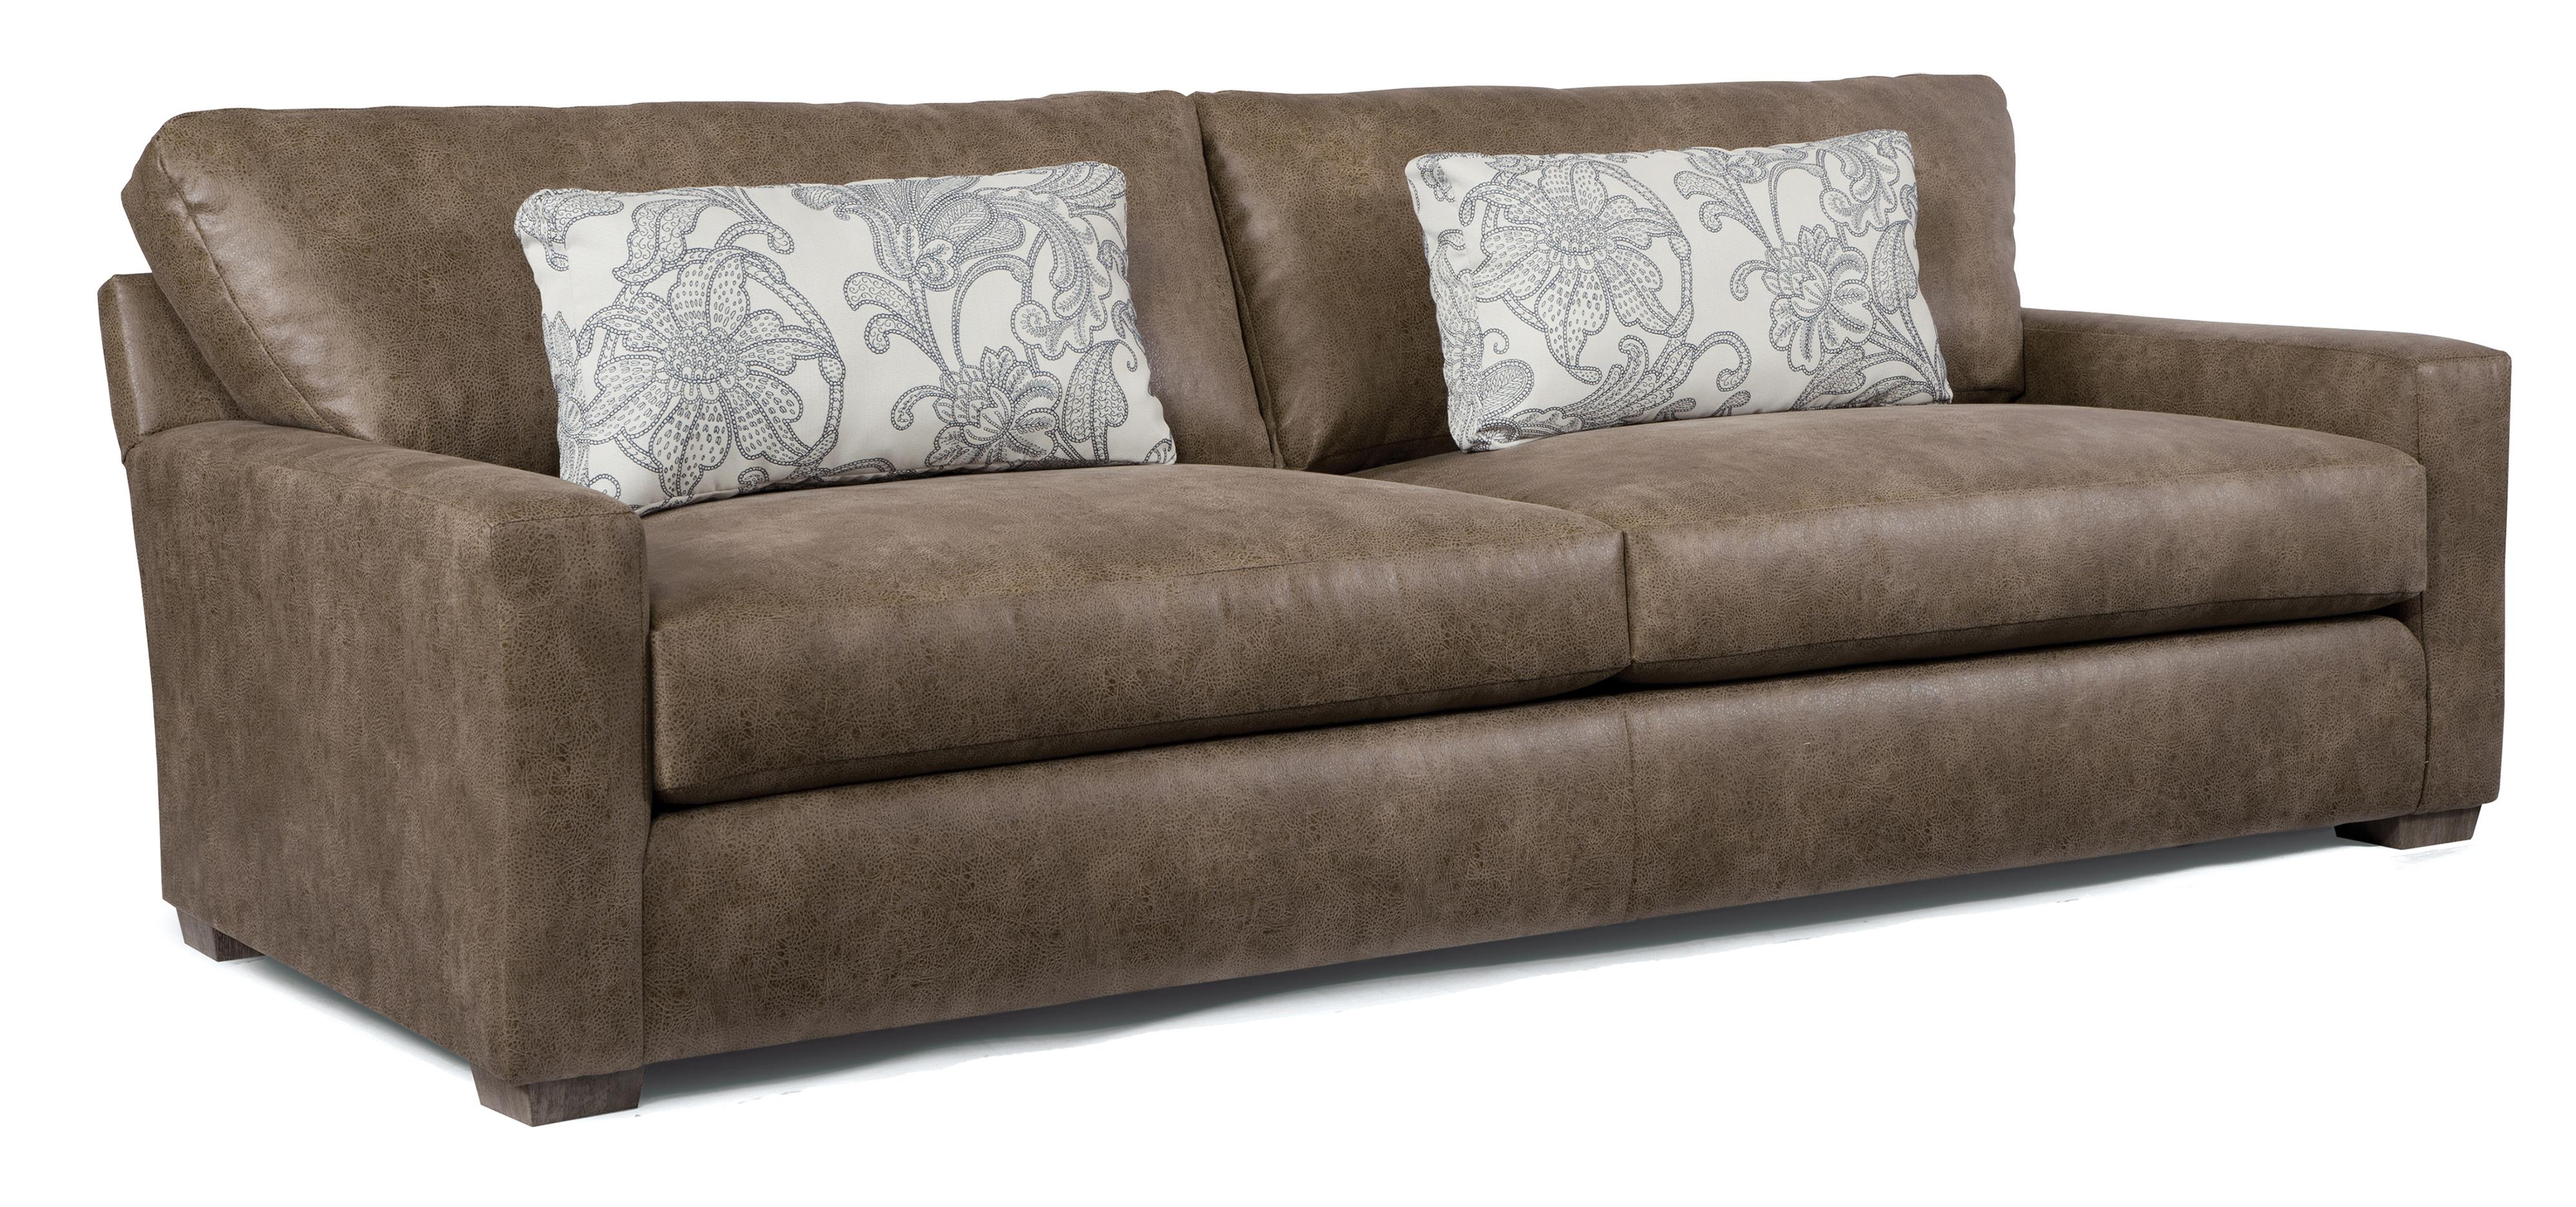 Contemporary Sofa with Deep Seats by Best Home Furnishings